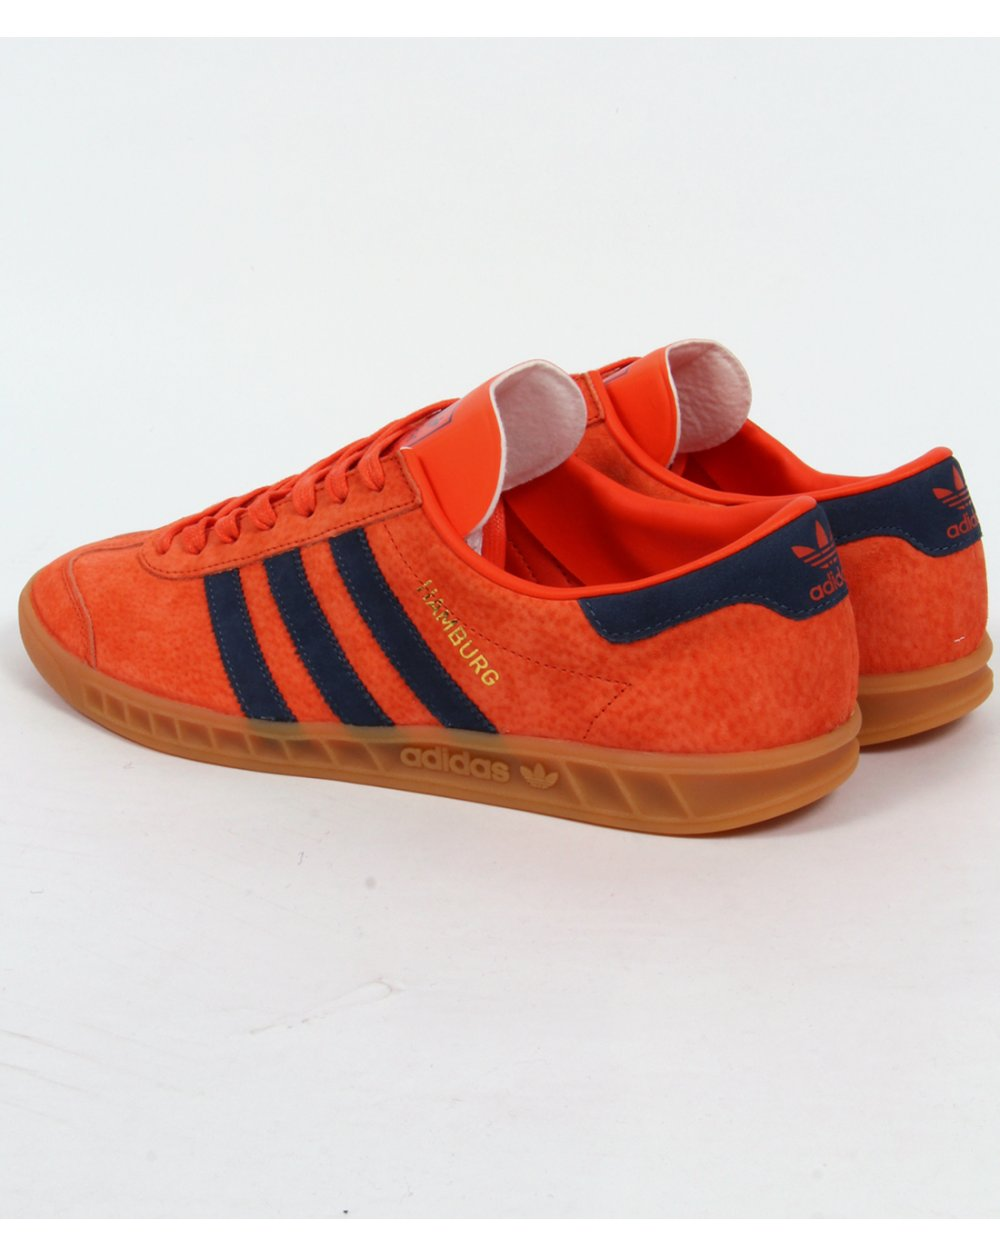 Adidas Grise Et Orange